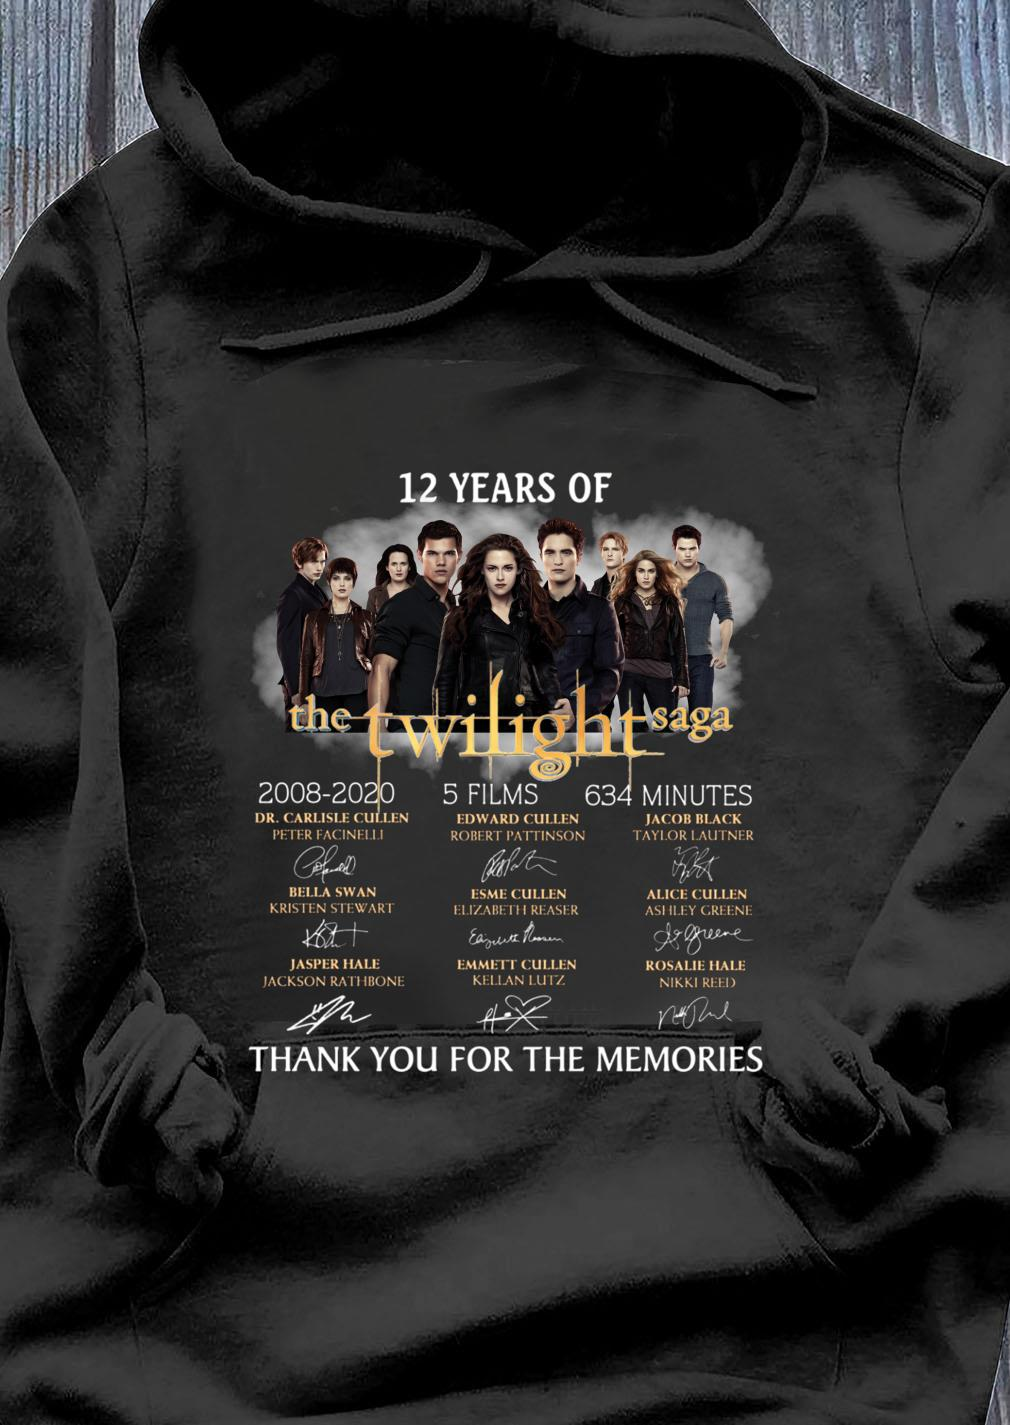 12 Years Of The Twilight Saga 2008 2020 Signature Thank You For The Memories Shirt Hoodie